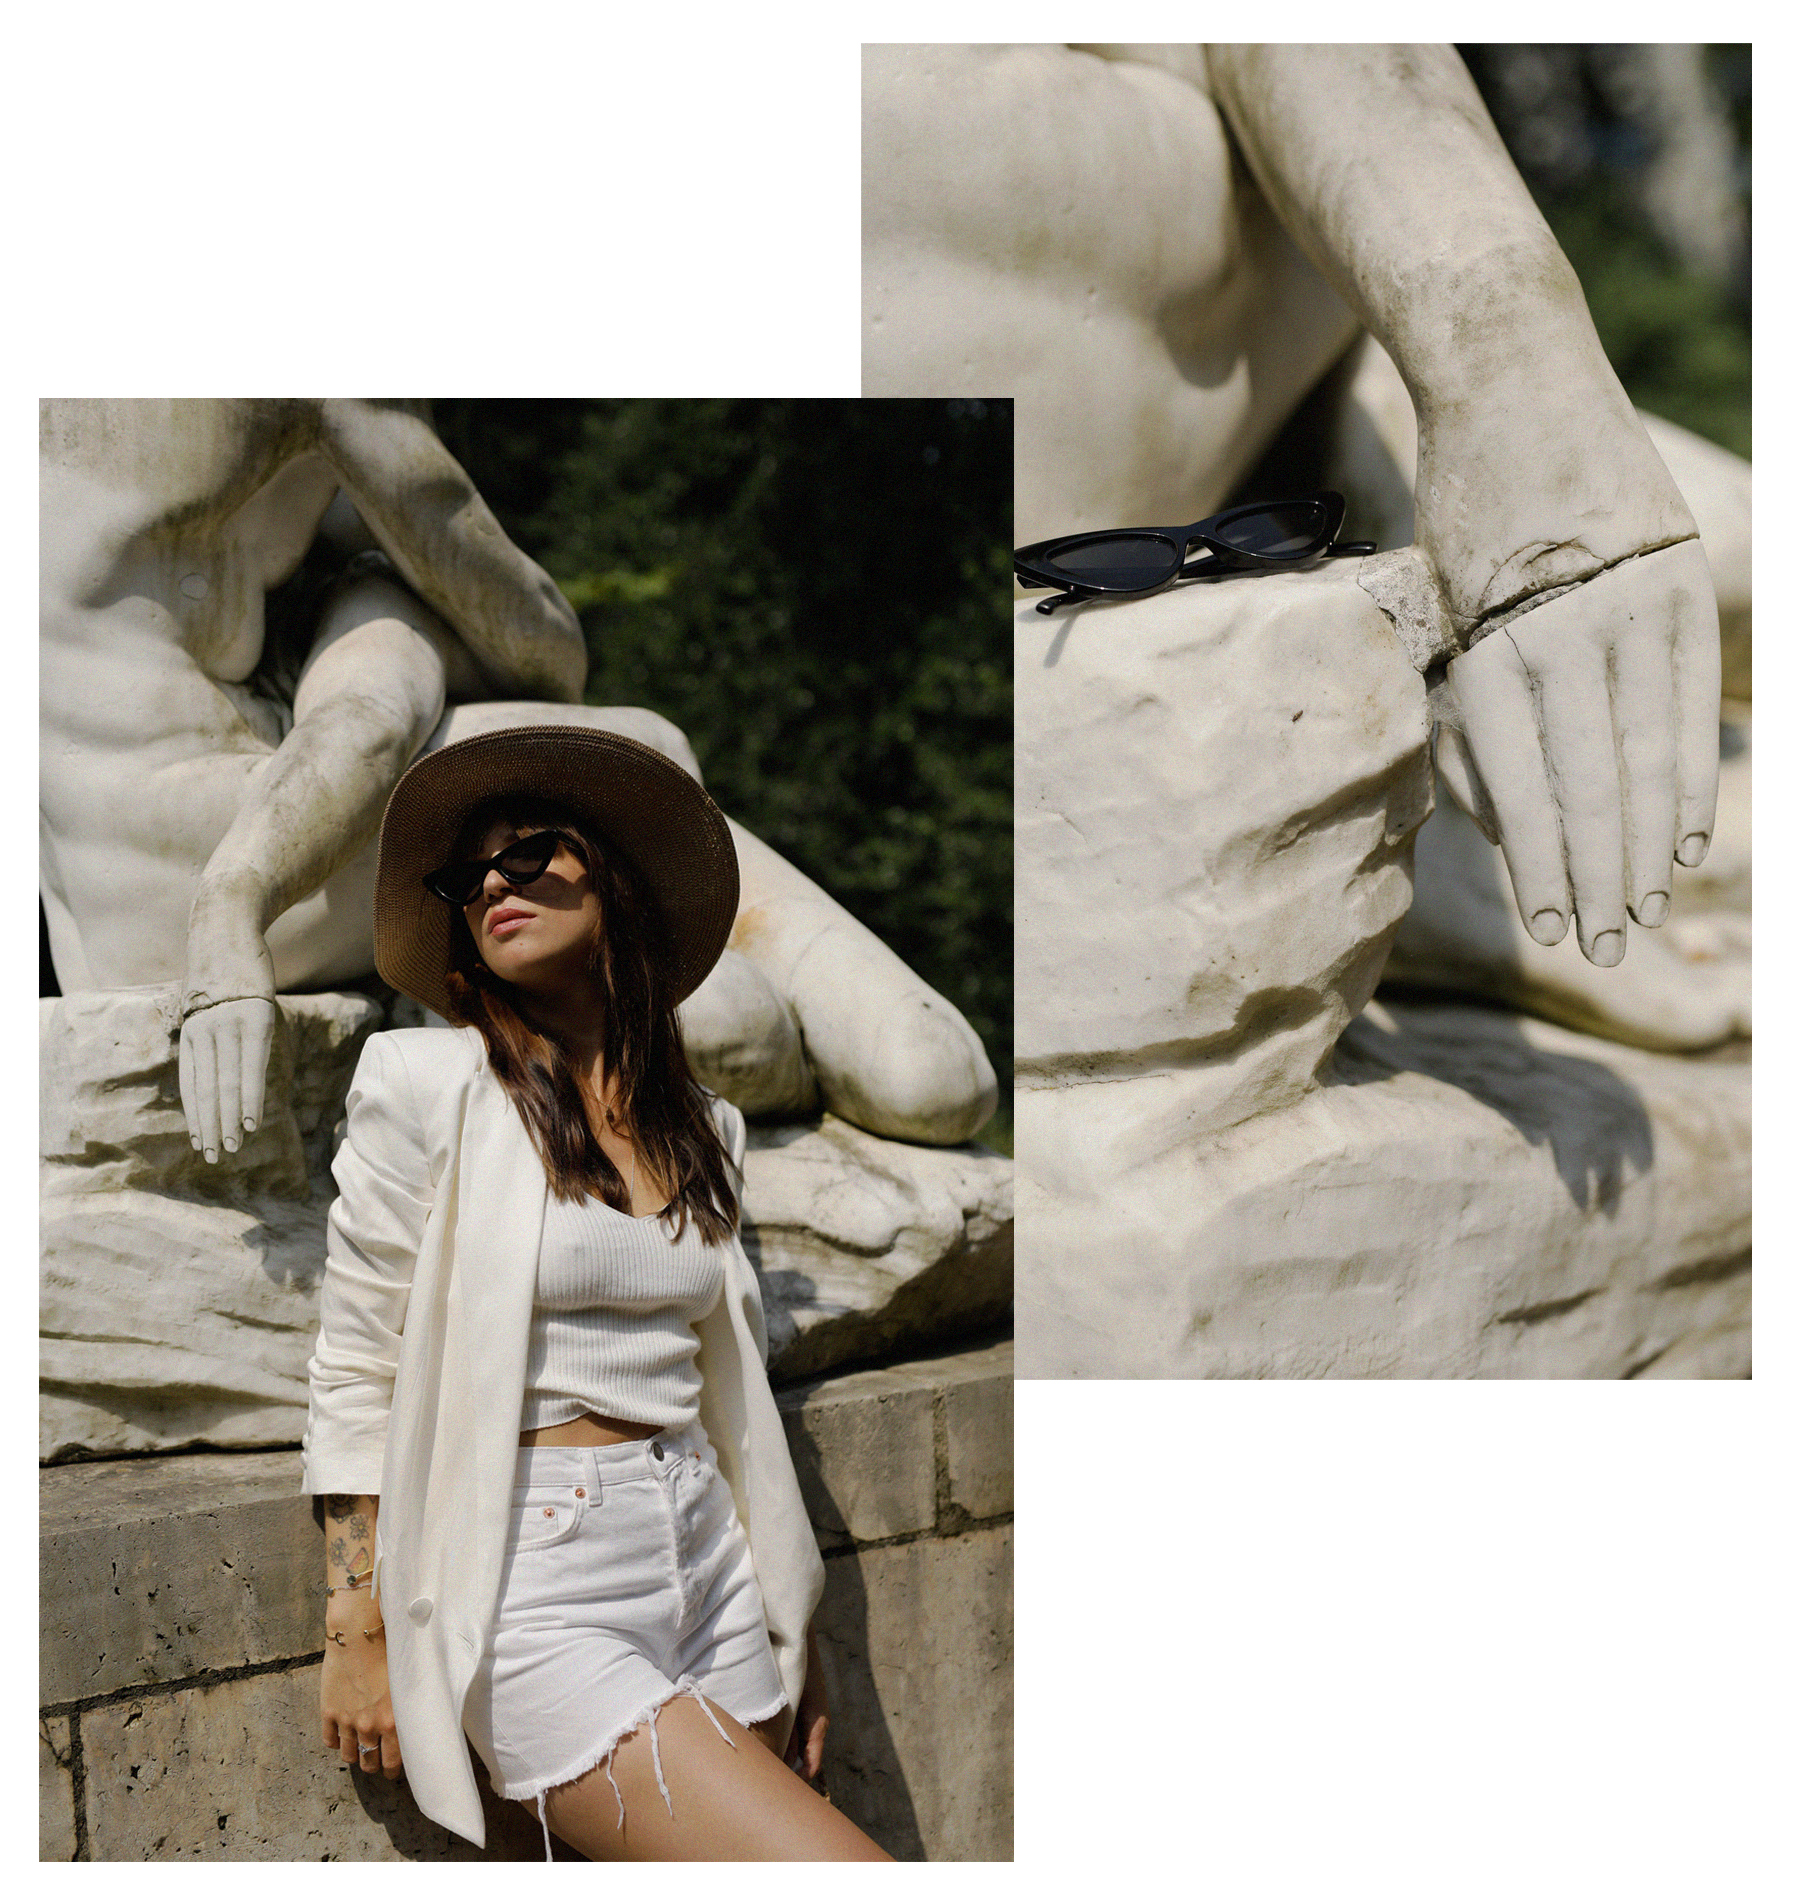 all white & other stories shorts blazer straw hat summer bag rouje hermes oran sandals statue marble dusseldorf düsseldorf dus art artist artsy fashionblogger modeblog jane birkin jeanne damas outfit mode inspiration look seventies ricarda schernus 6